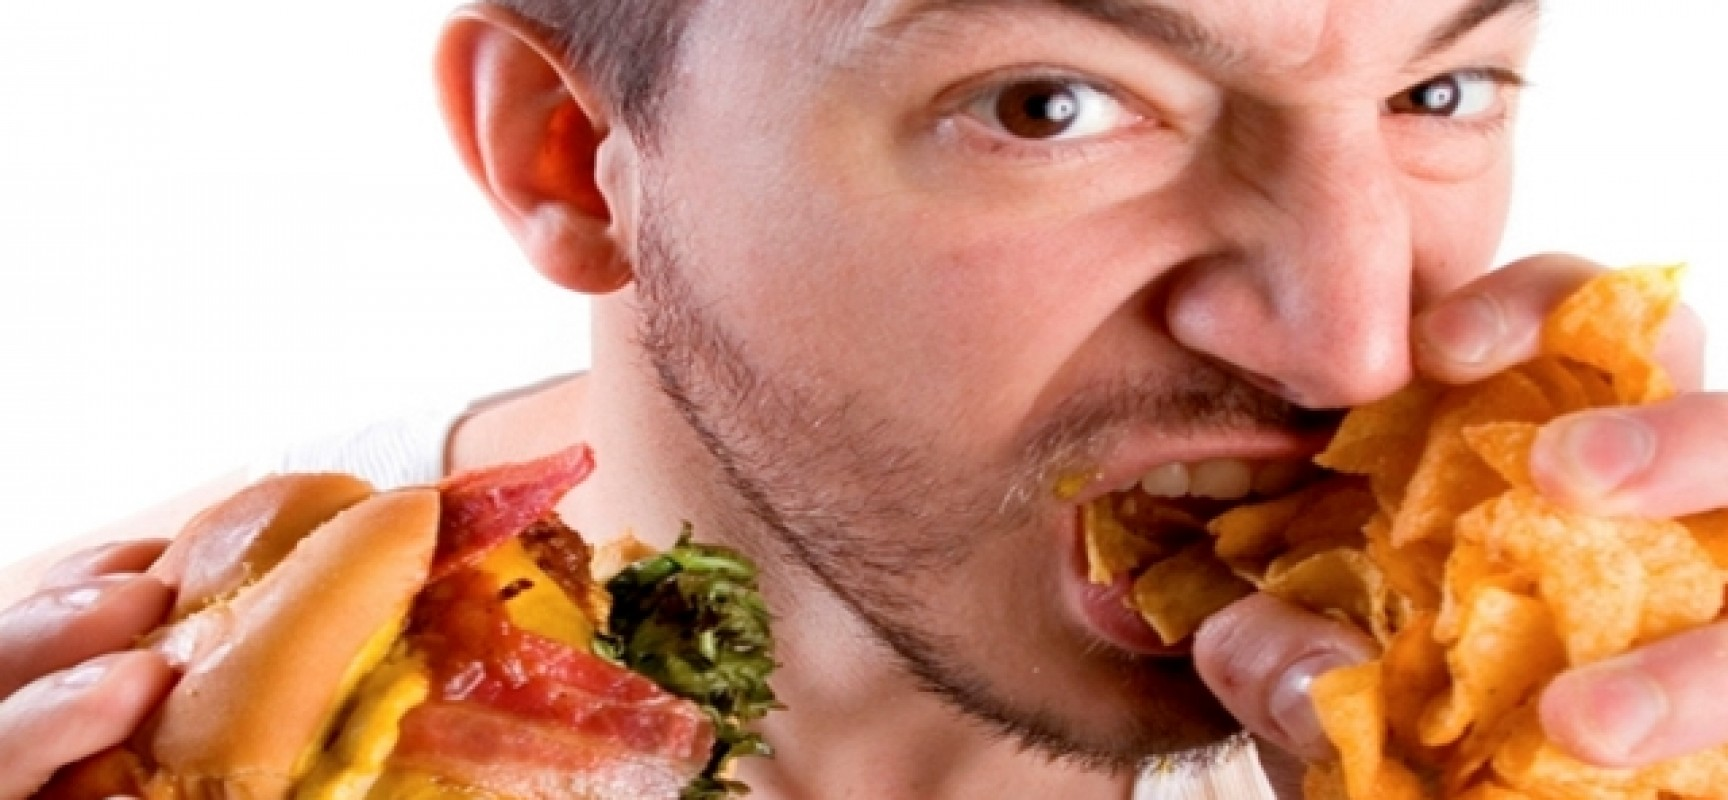 Food Addiction: Sign, Symptoms and Treatment